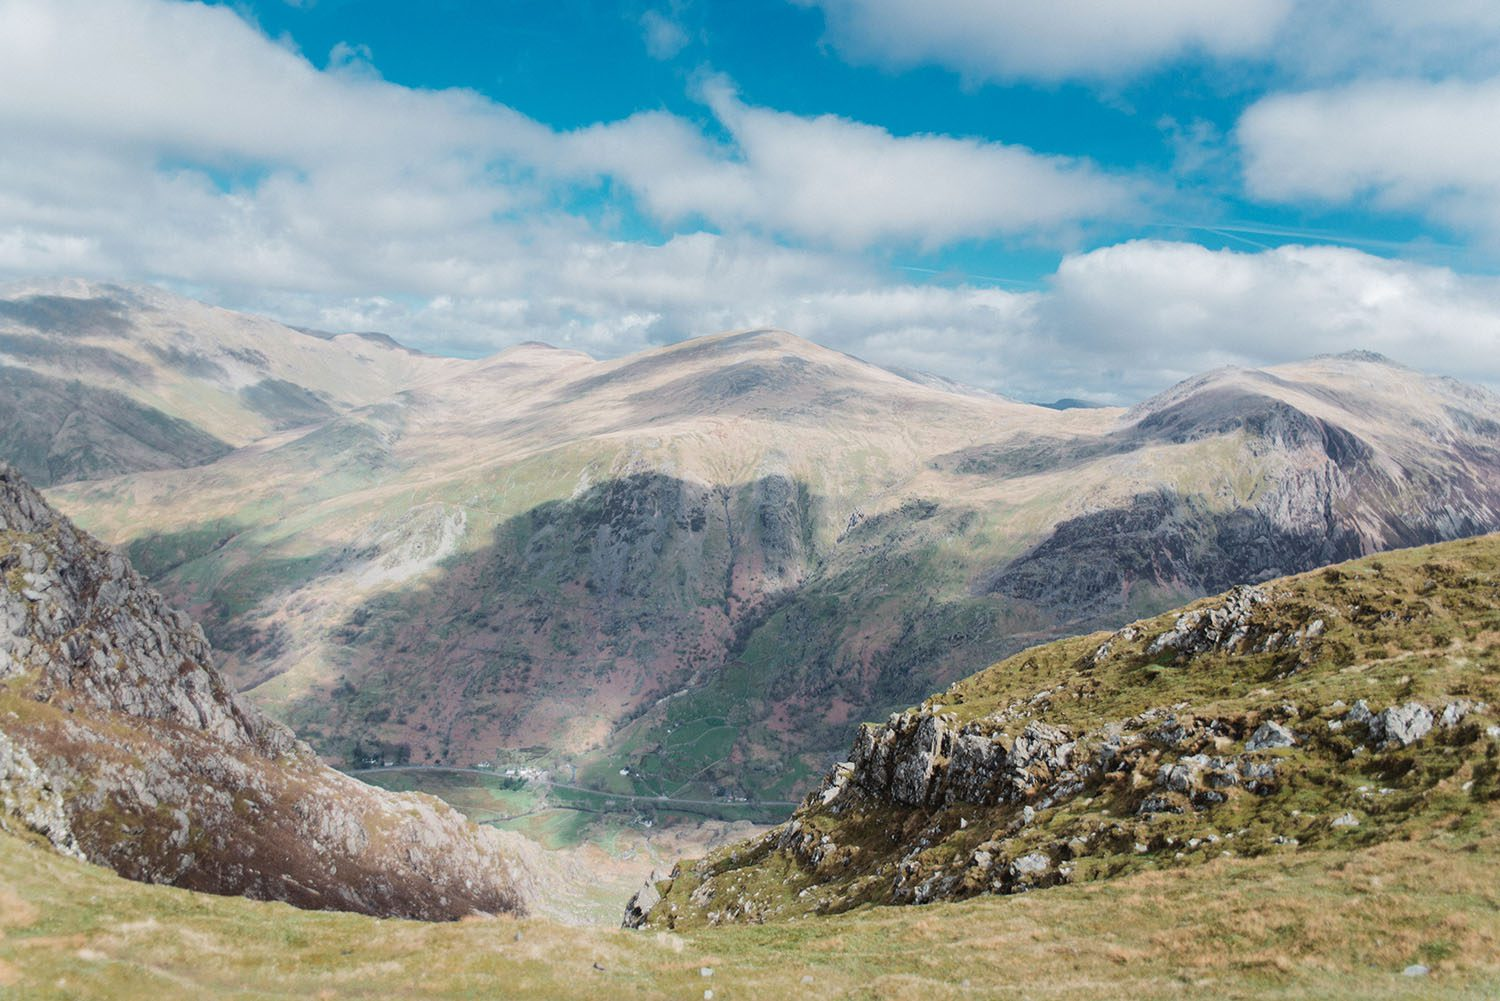 Clogwyn, Snowdonia National Park in Wales - King Arthur: Legend of the Sword Filming Location in Wales